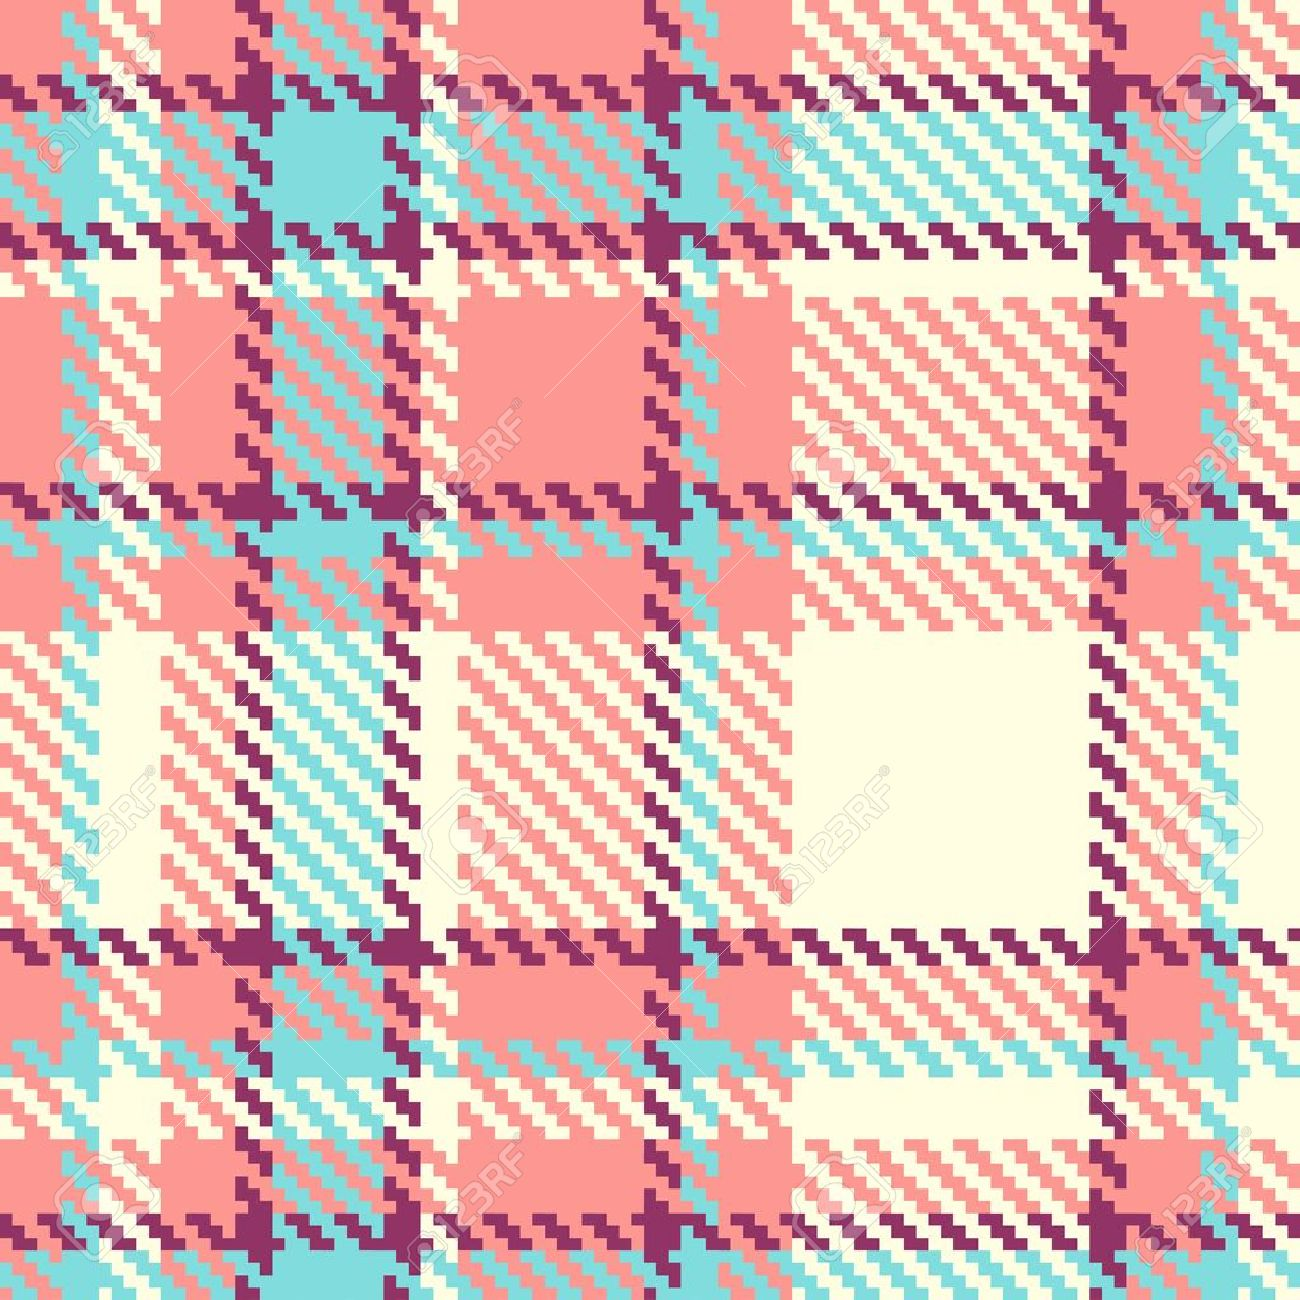 Tartan Pattern 11,428 tartan pattern cliparts, stock vector and royalty free